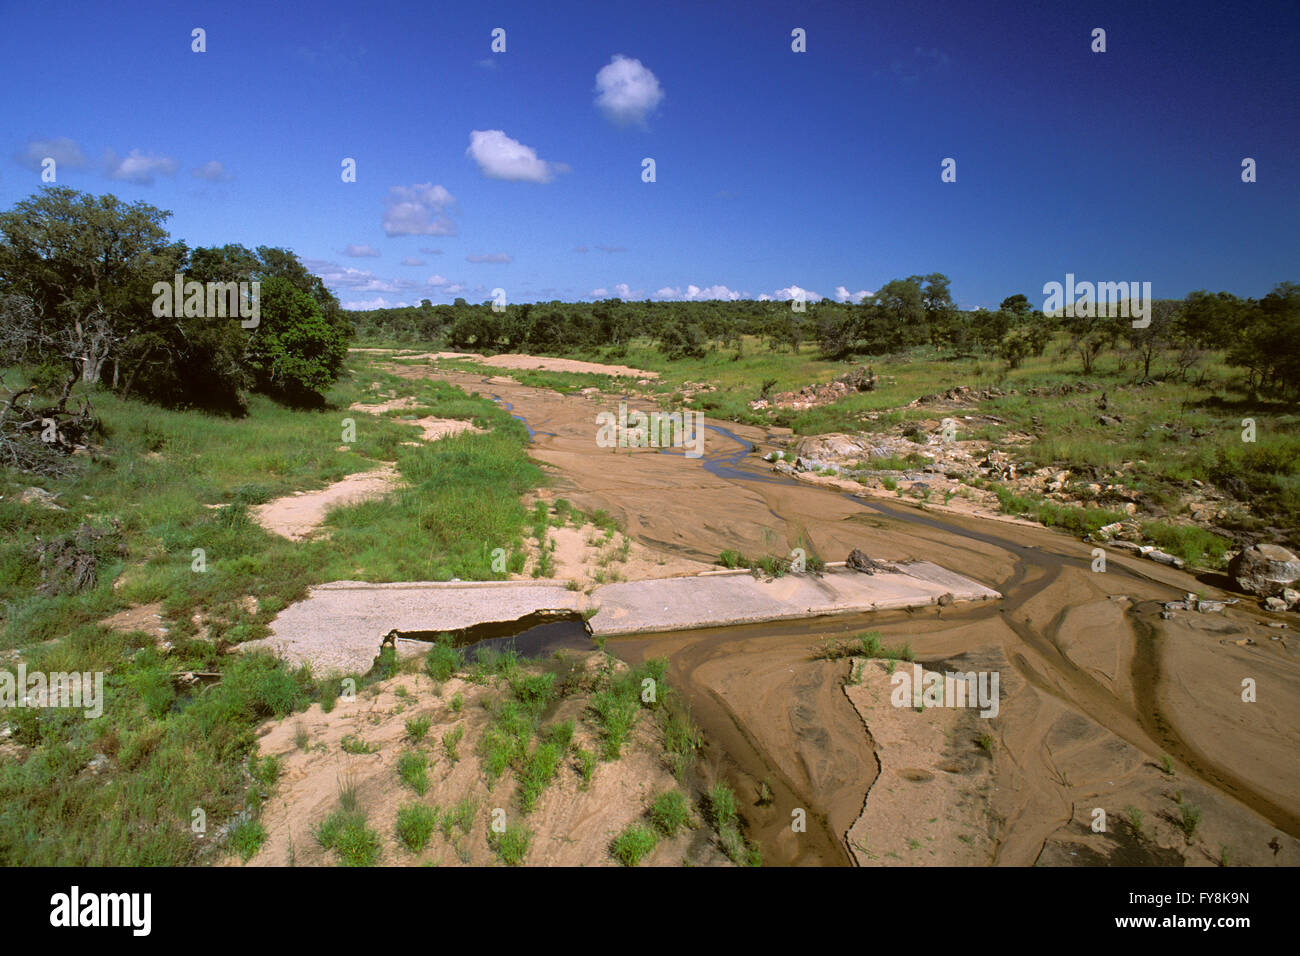 Dry river in the Kruger National Park, South Africa - Stock Image